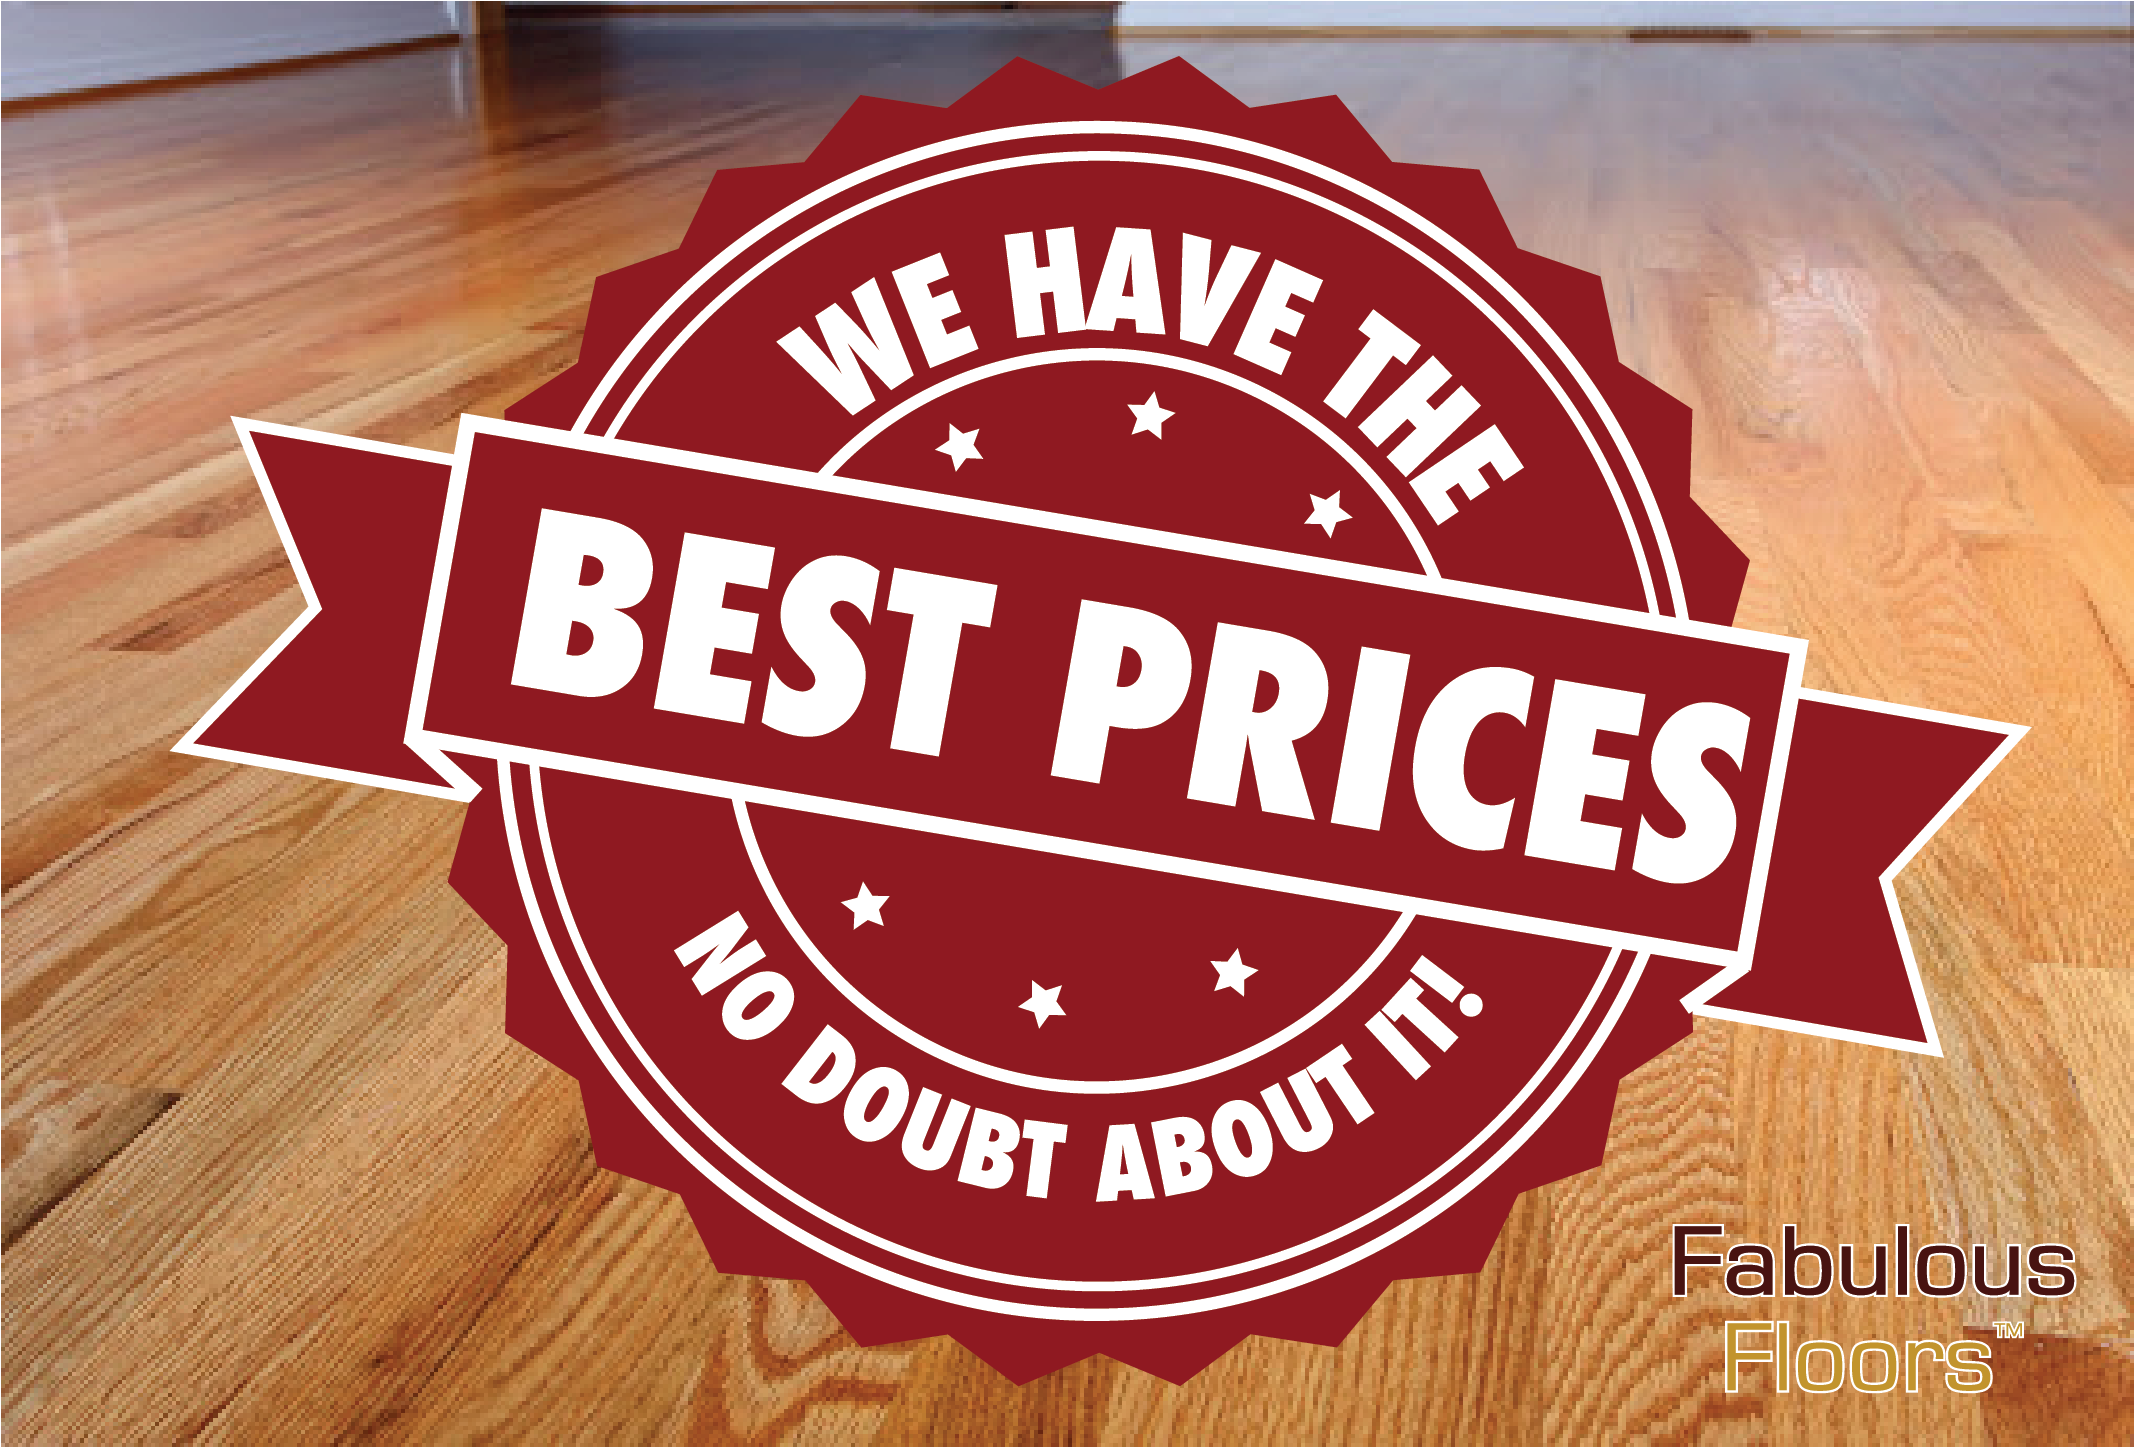 a graphic saying that we have the best prices around